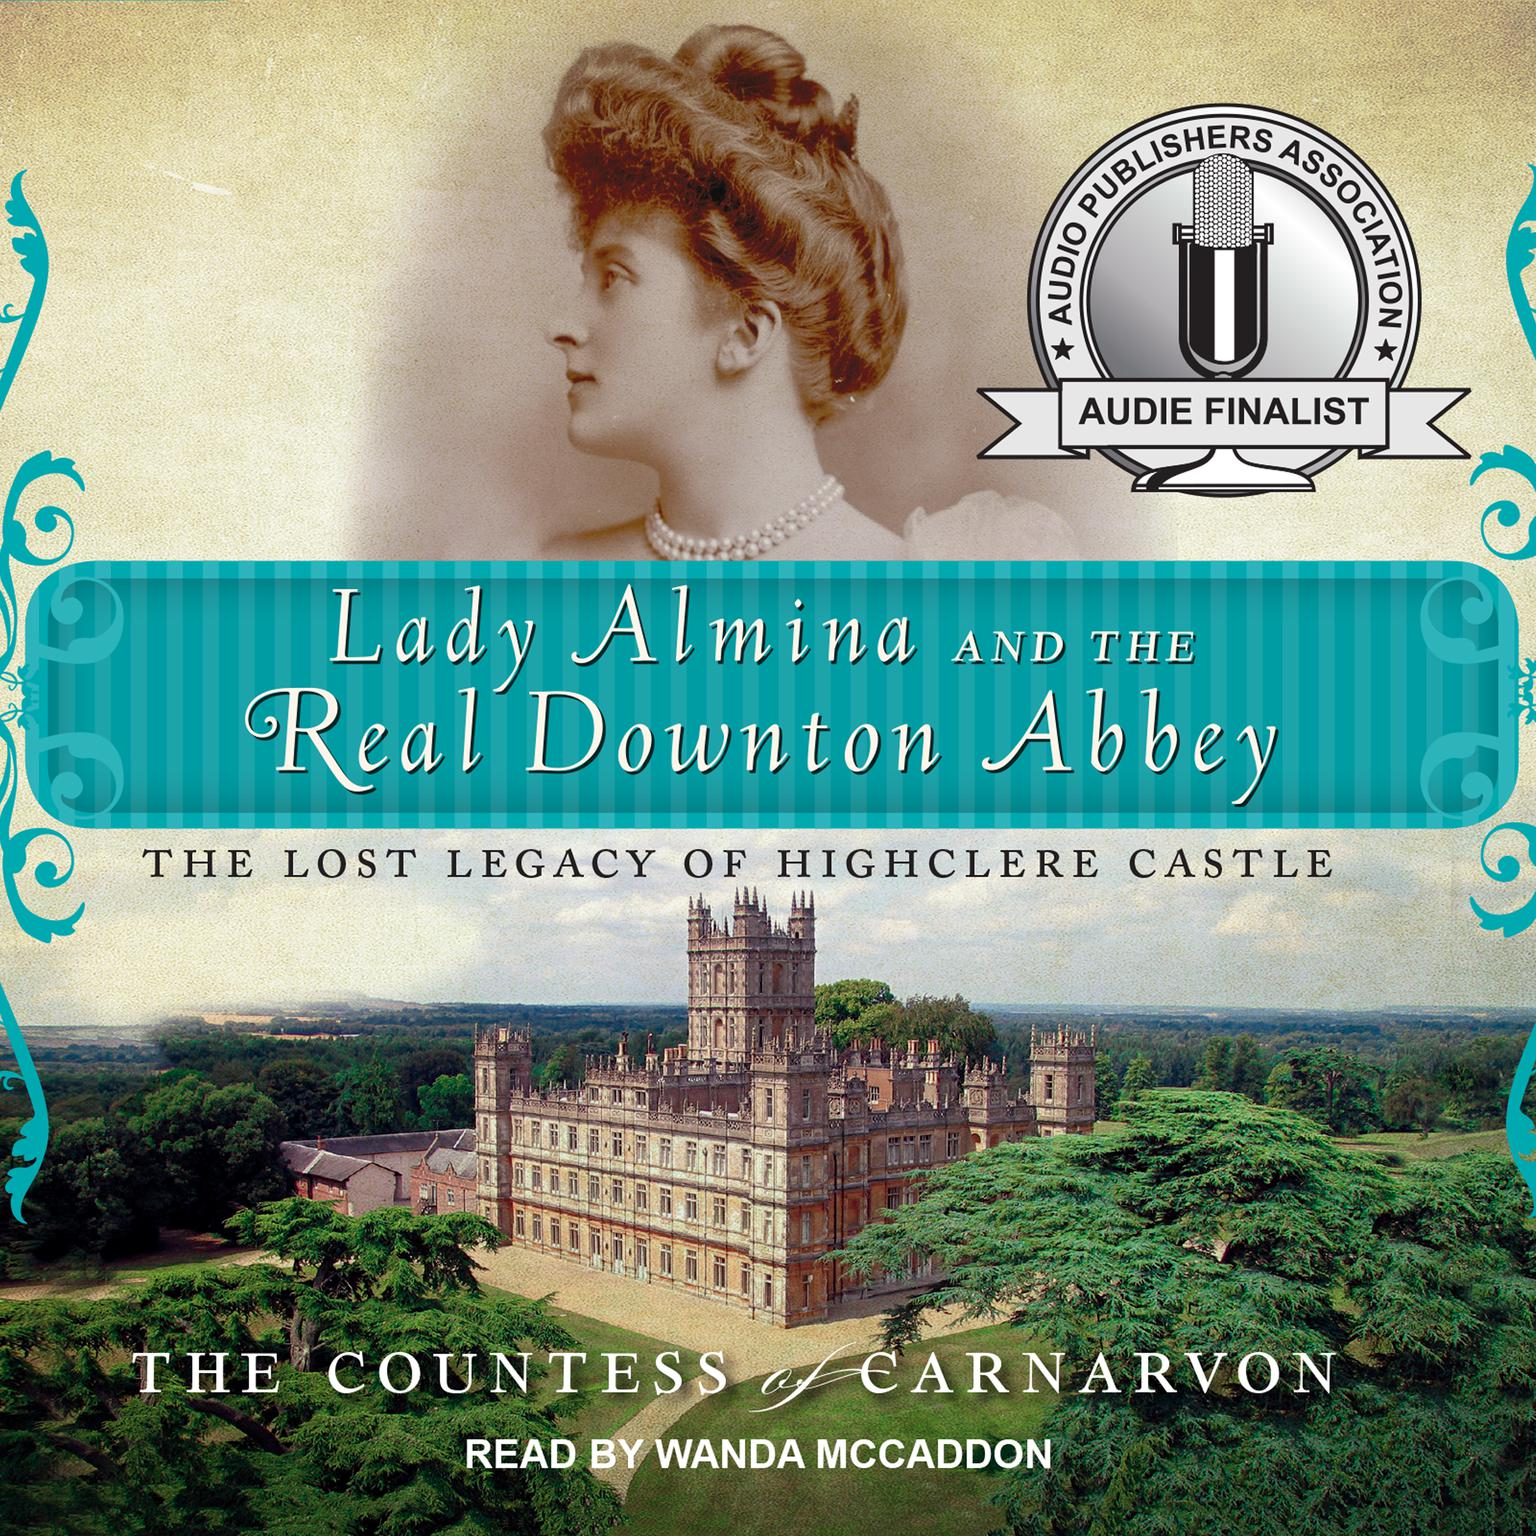 Printable Lady Almina and the Real Downton Abbey: The Lost Legacy of Highclere Castle Audiobook Cover Art